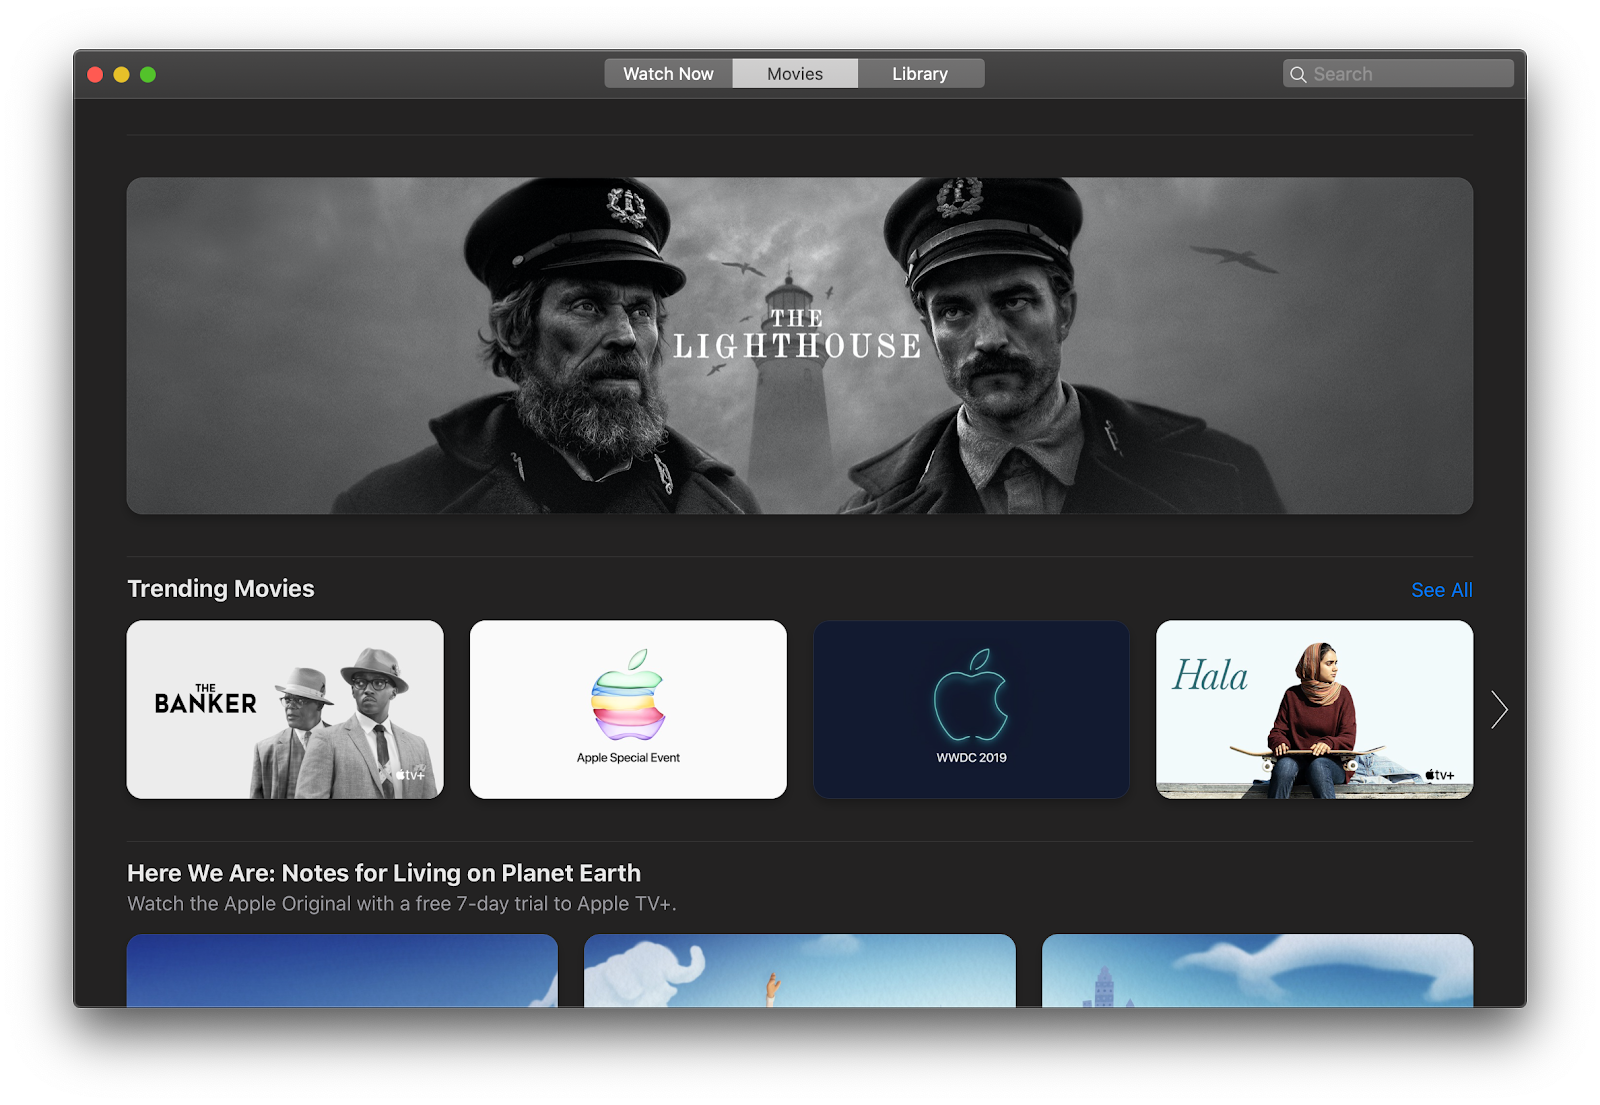 Apple TV+ movies